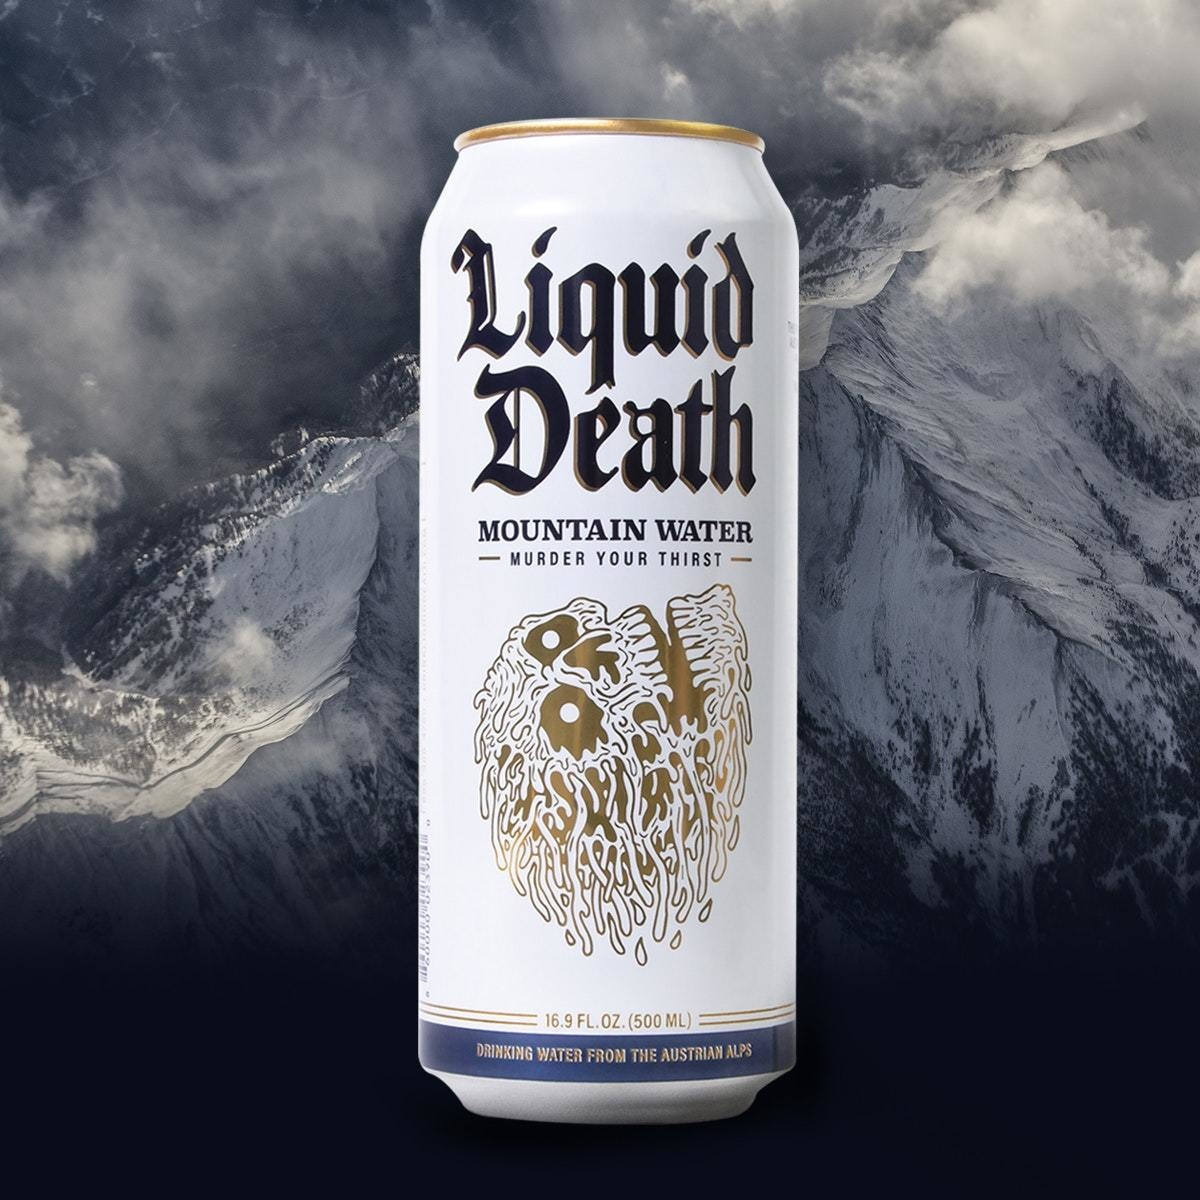 Liquid Death Austrian Mountain Water